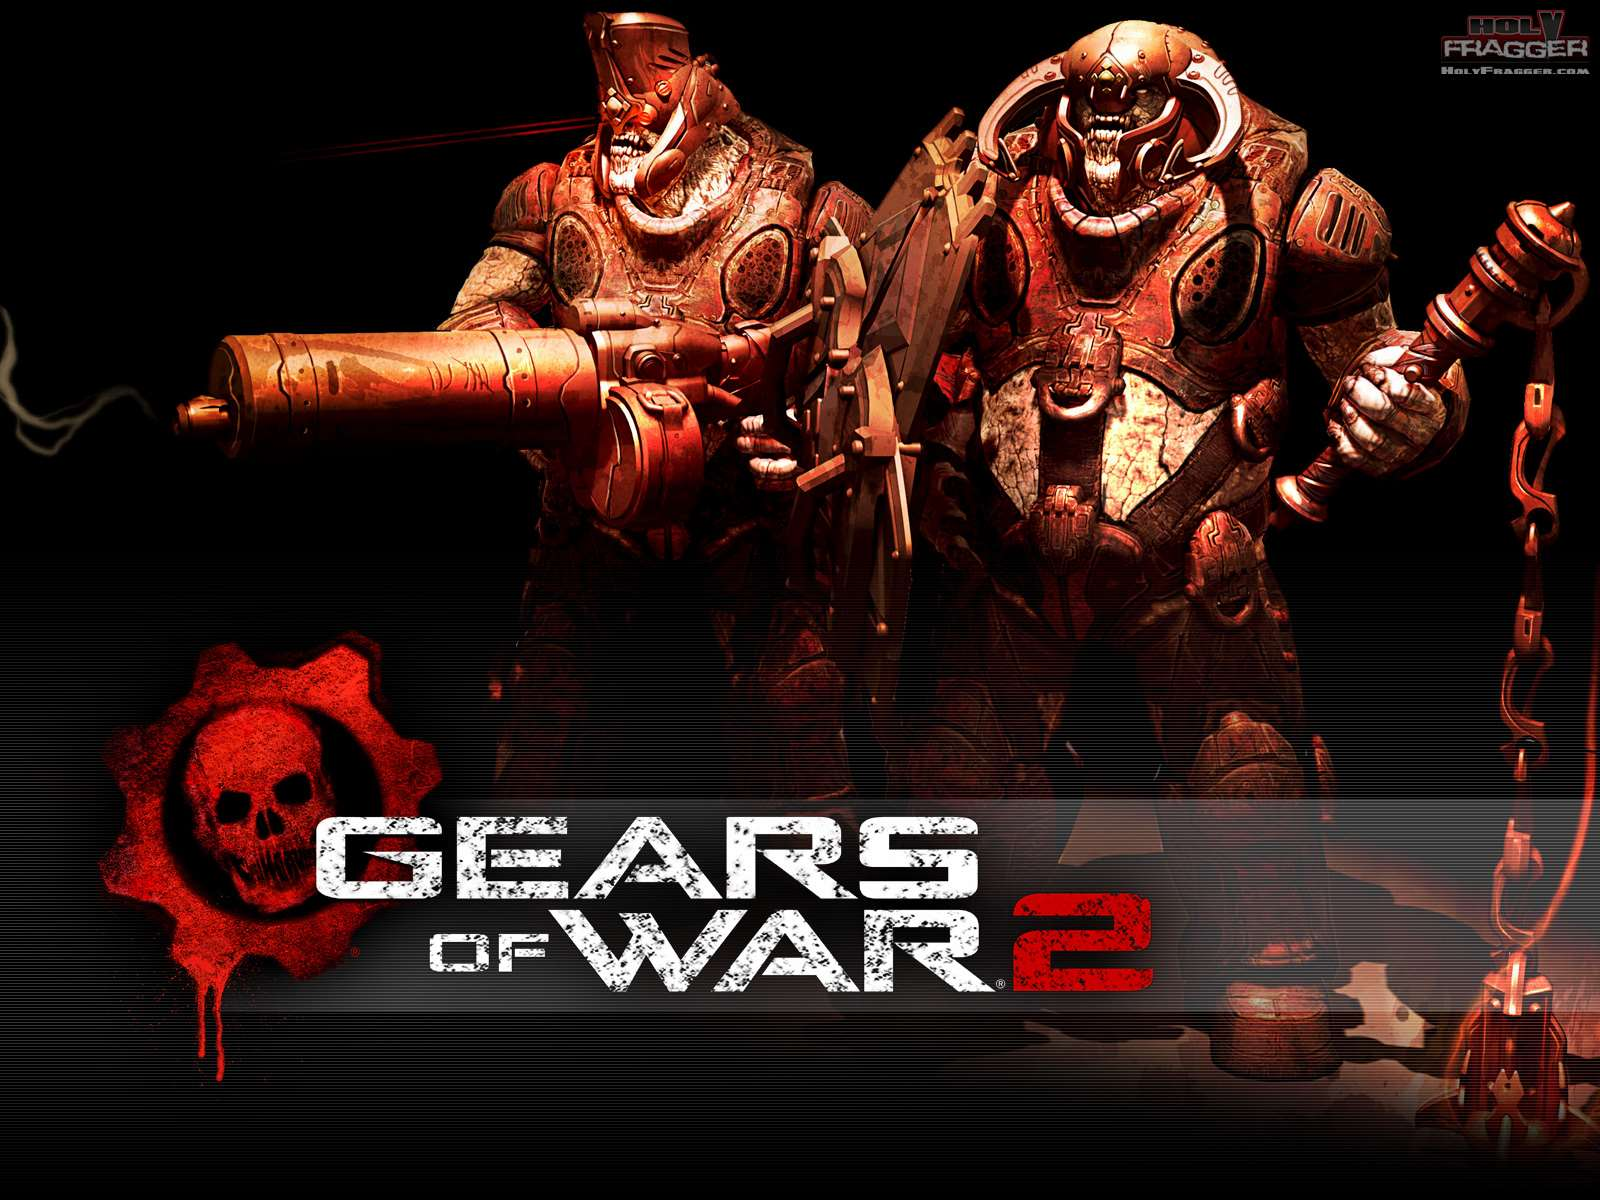 gears of war 2 holyfragger gears of war 2 wallpaper 6 - boomers